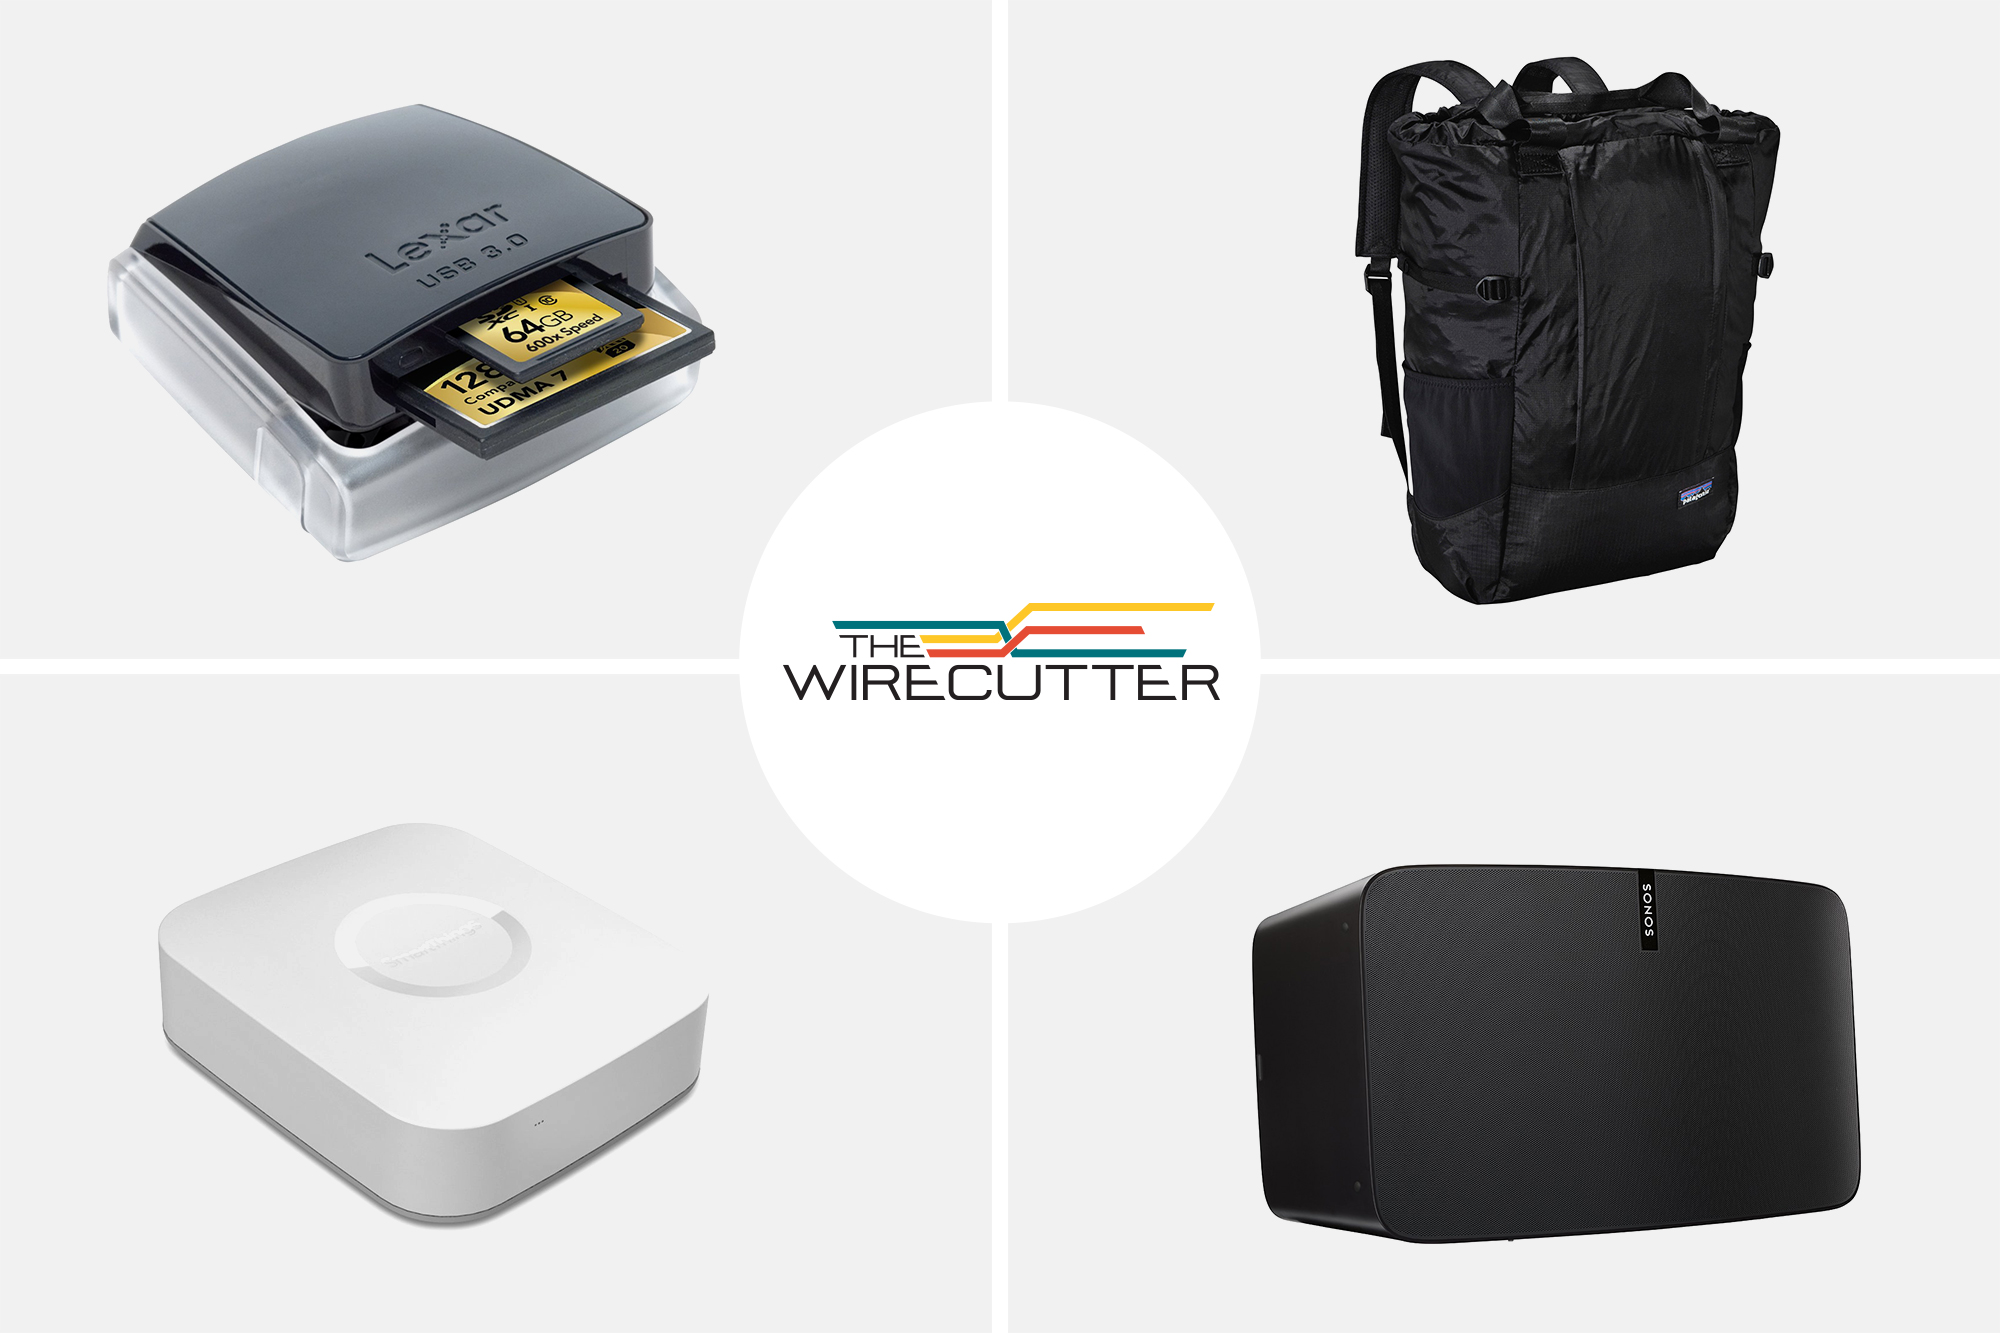 The Wirecutter's best deals: 20 percent off Samsung's SmartThings Hub